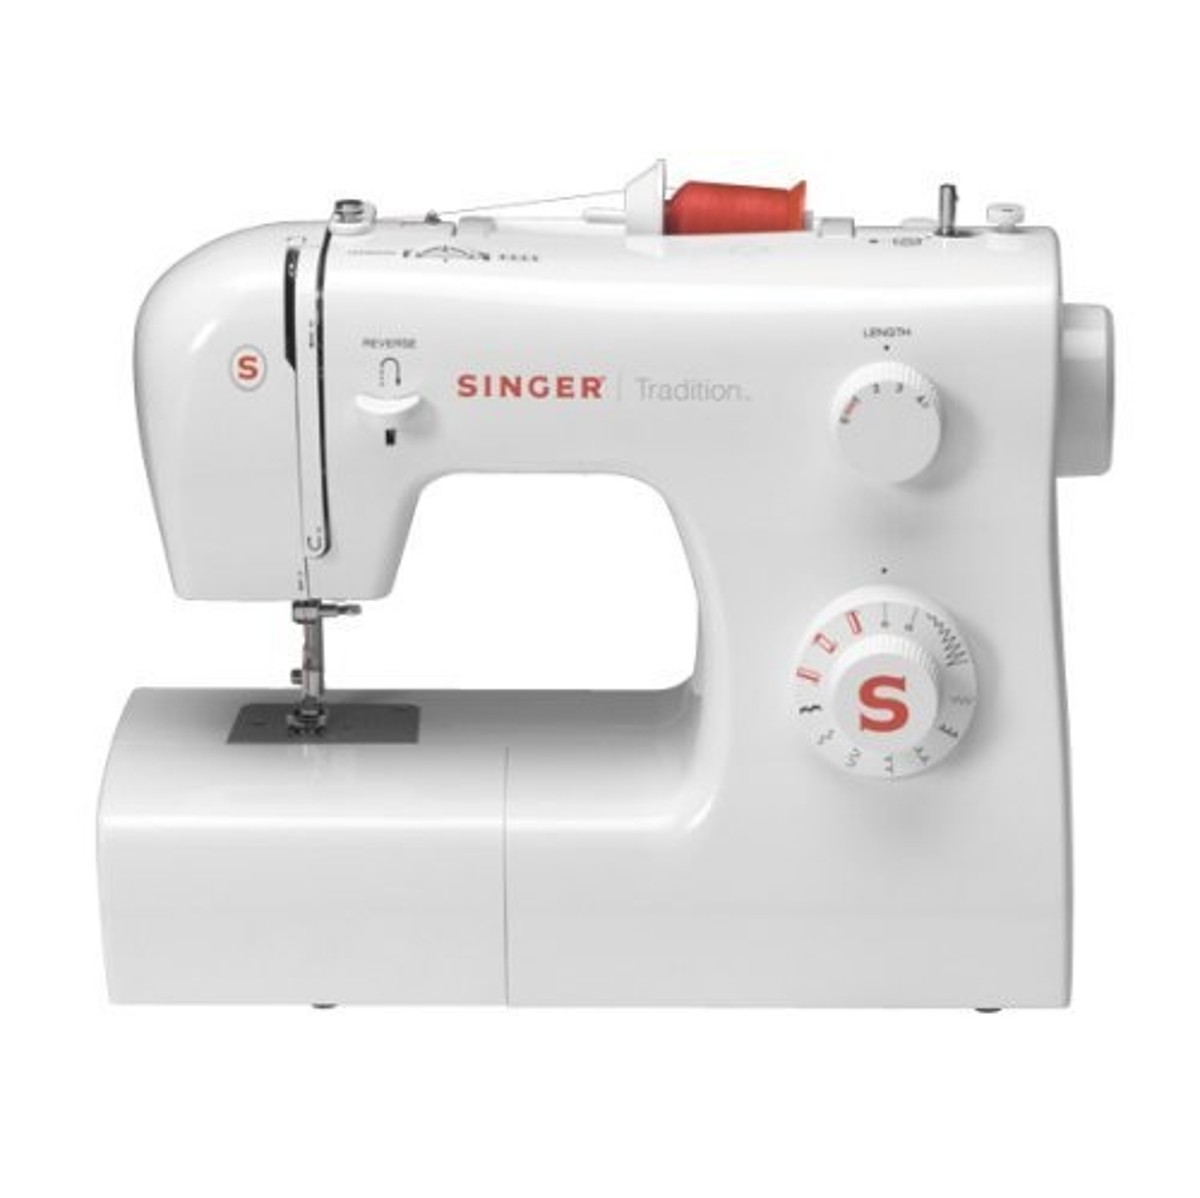 singer tradition 2250 portable sewing machine. Black Bedroom Furniture Sets. Home Design Ideas